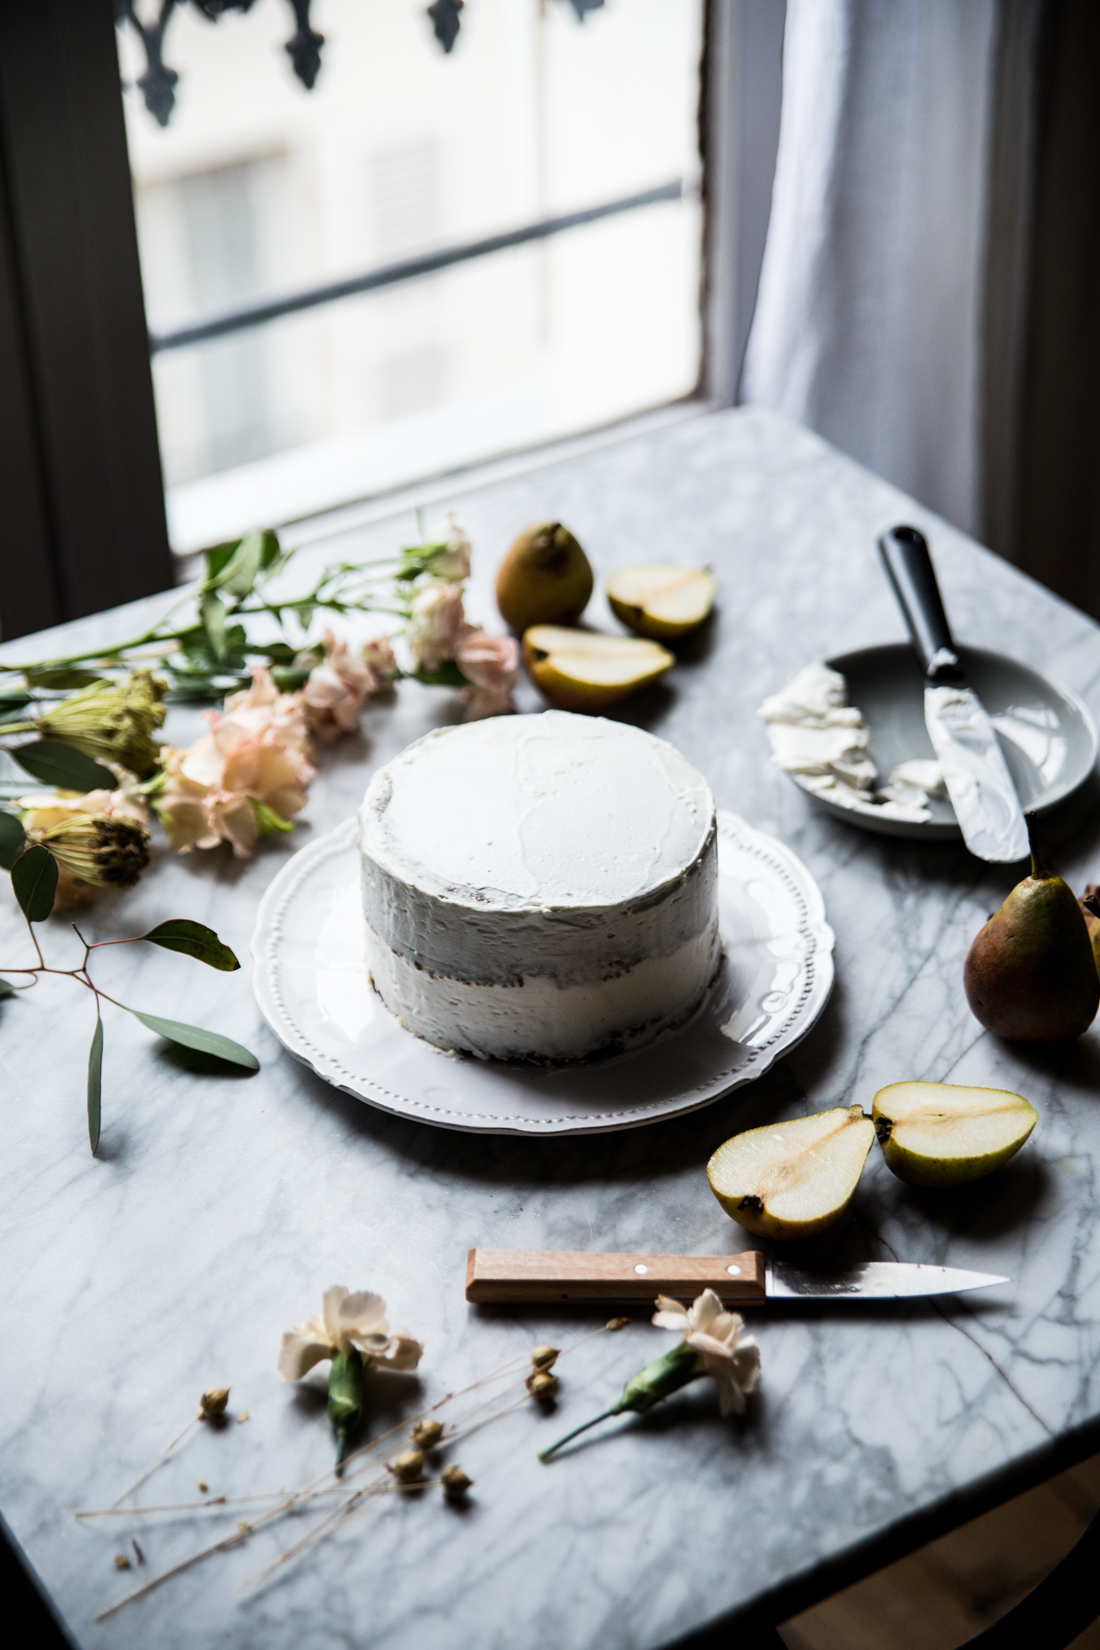 layer-cake-poires-cardamone-glacage-mascarpone-et-vanille-coulant-au-chocolat-ophelies-kitchen-book-ophelie-lauret